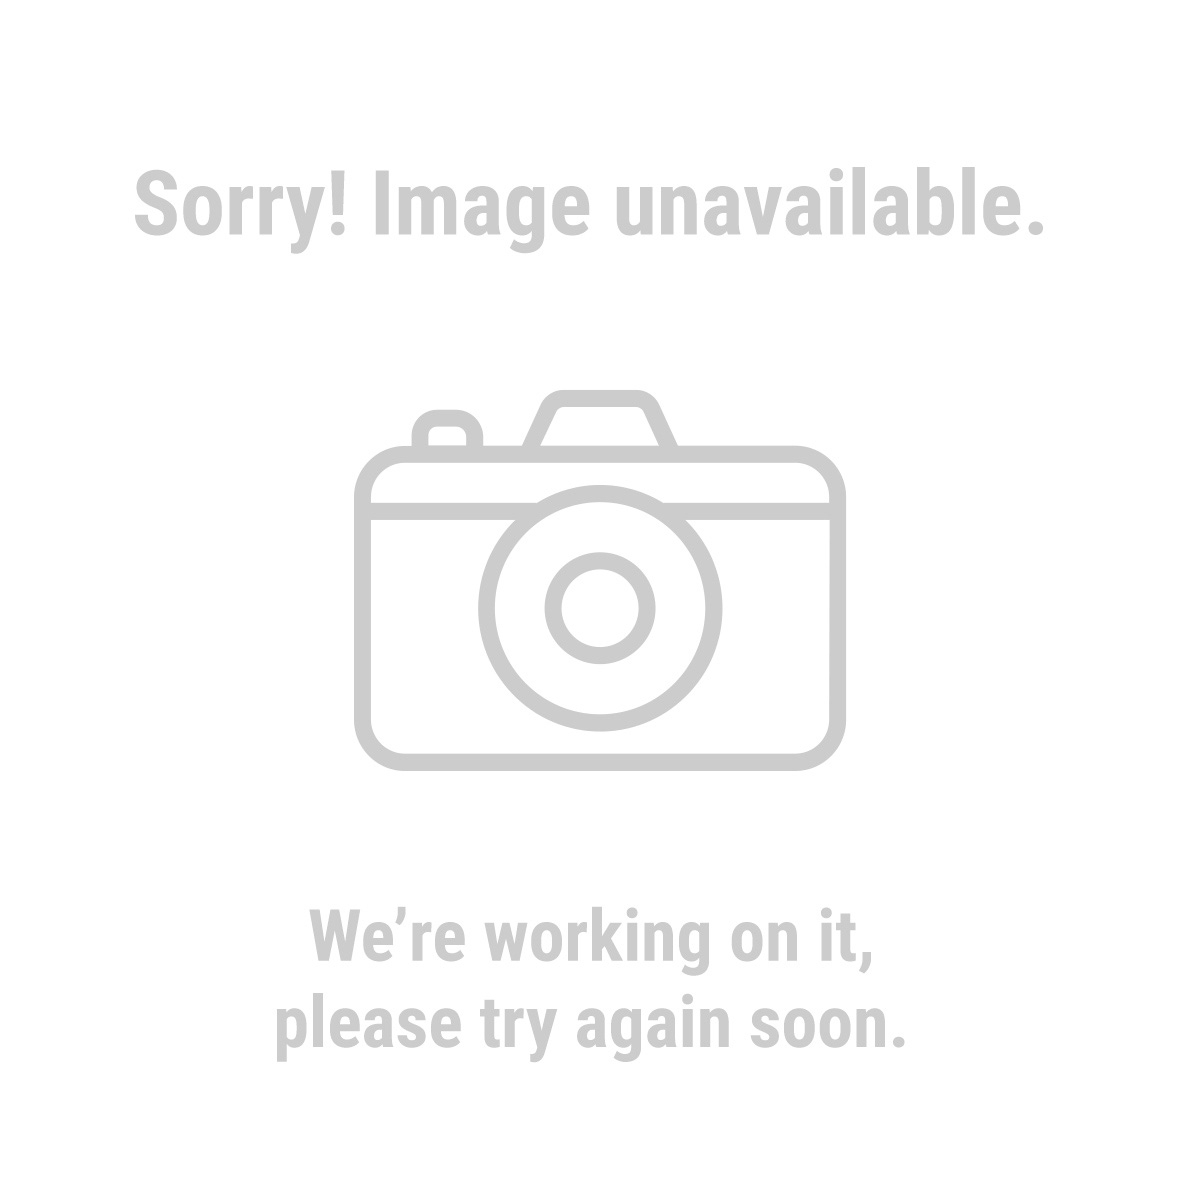 47782 350 Lb. Capacity Sawhorses, 2 Piece Set